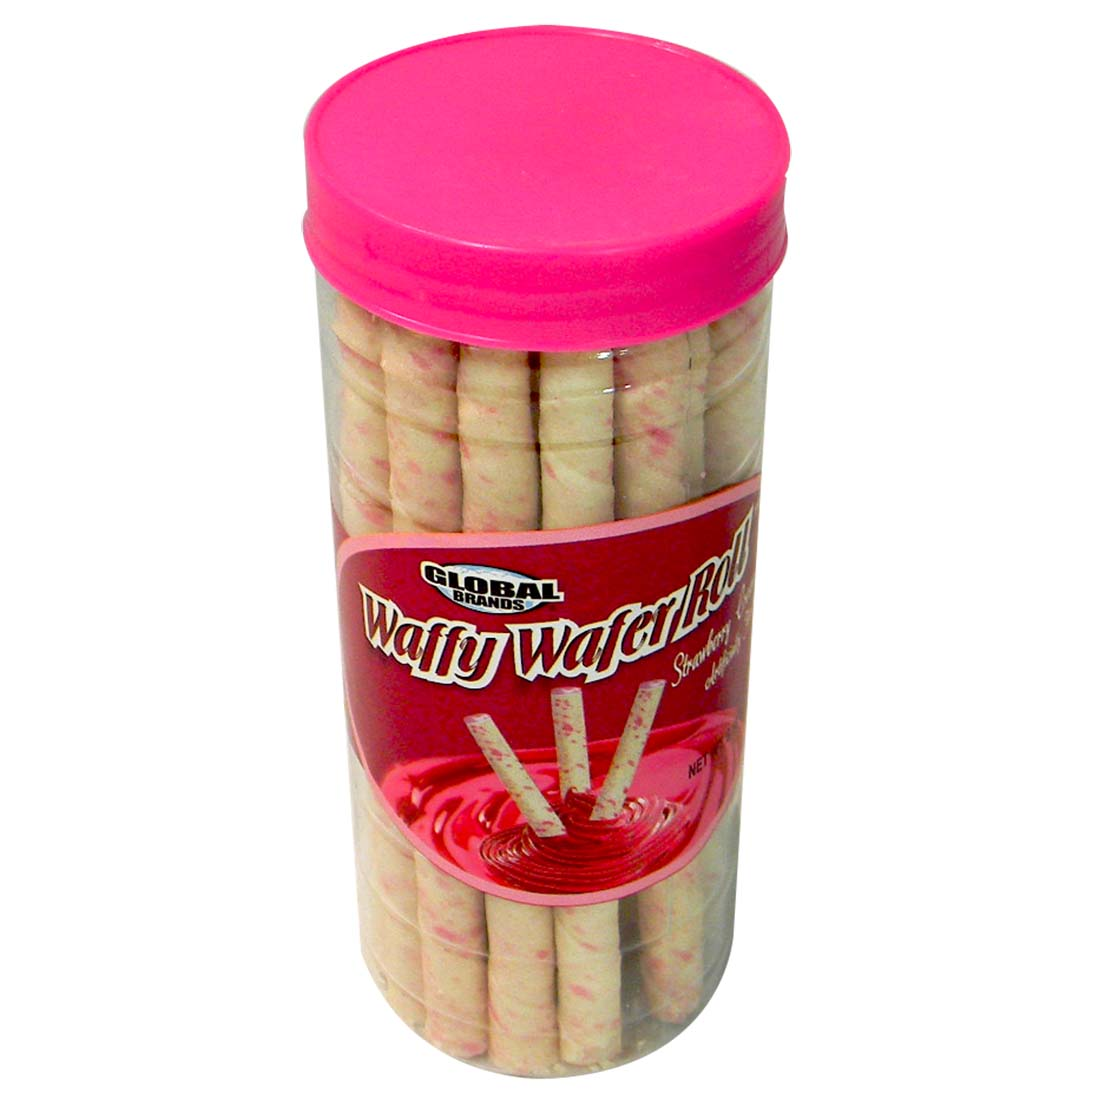 View GLOBAL WAFER ROLL 5.68 OZ STRAWBERRY CREAM